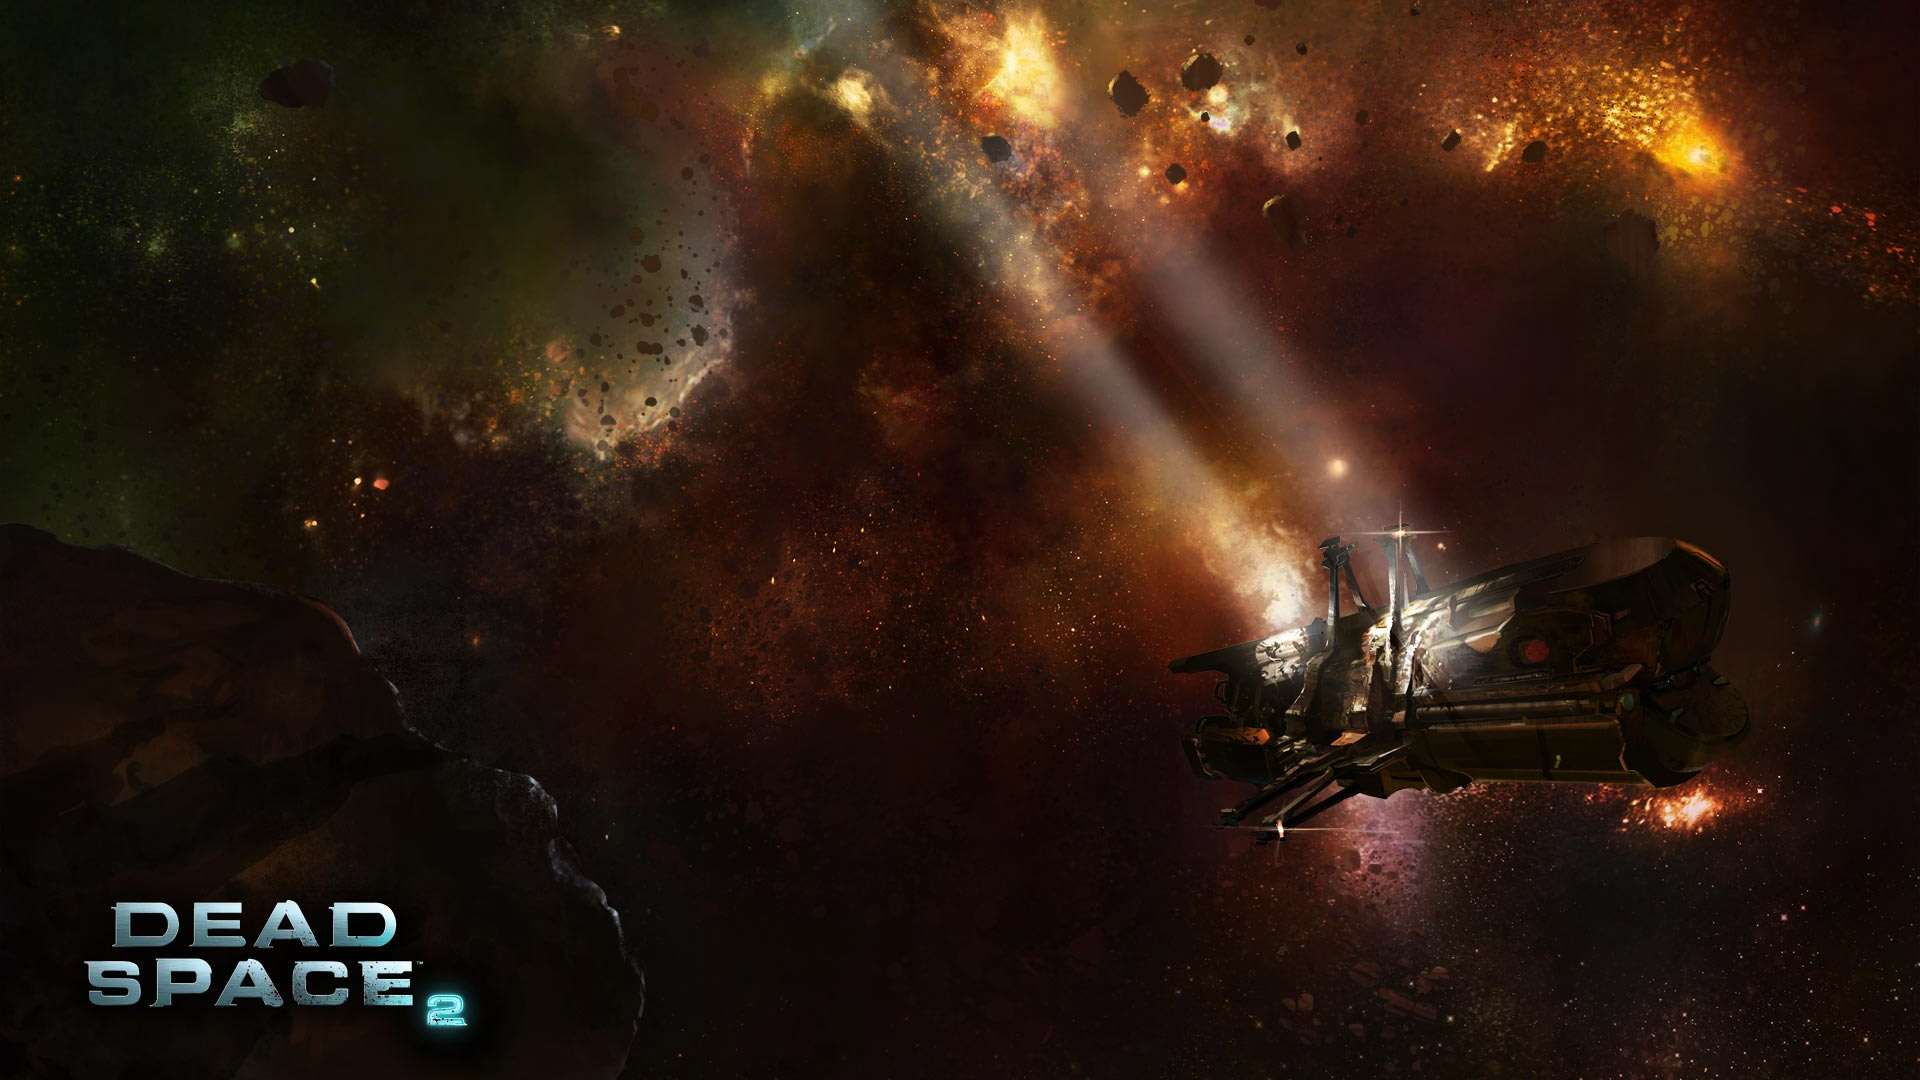 Dead Space 2 1080p Wallpaper Dead Space 2 720p Wallpaper